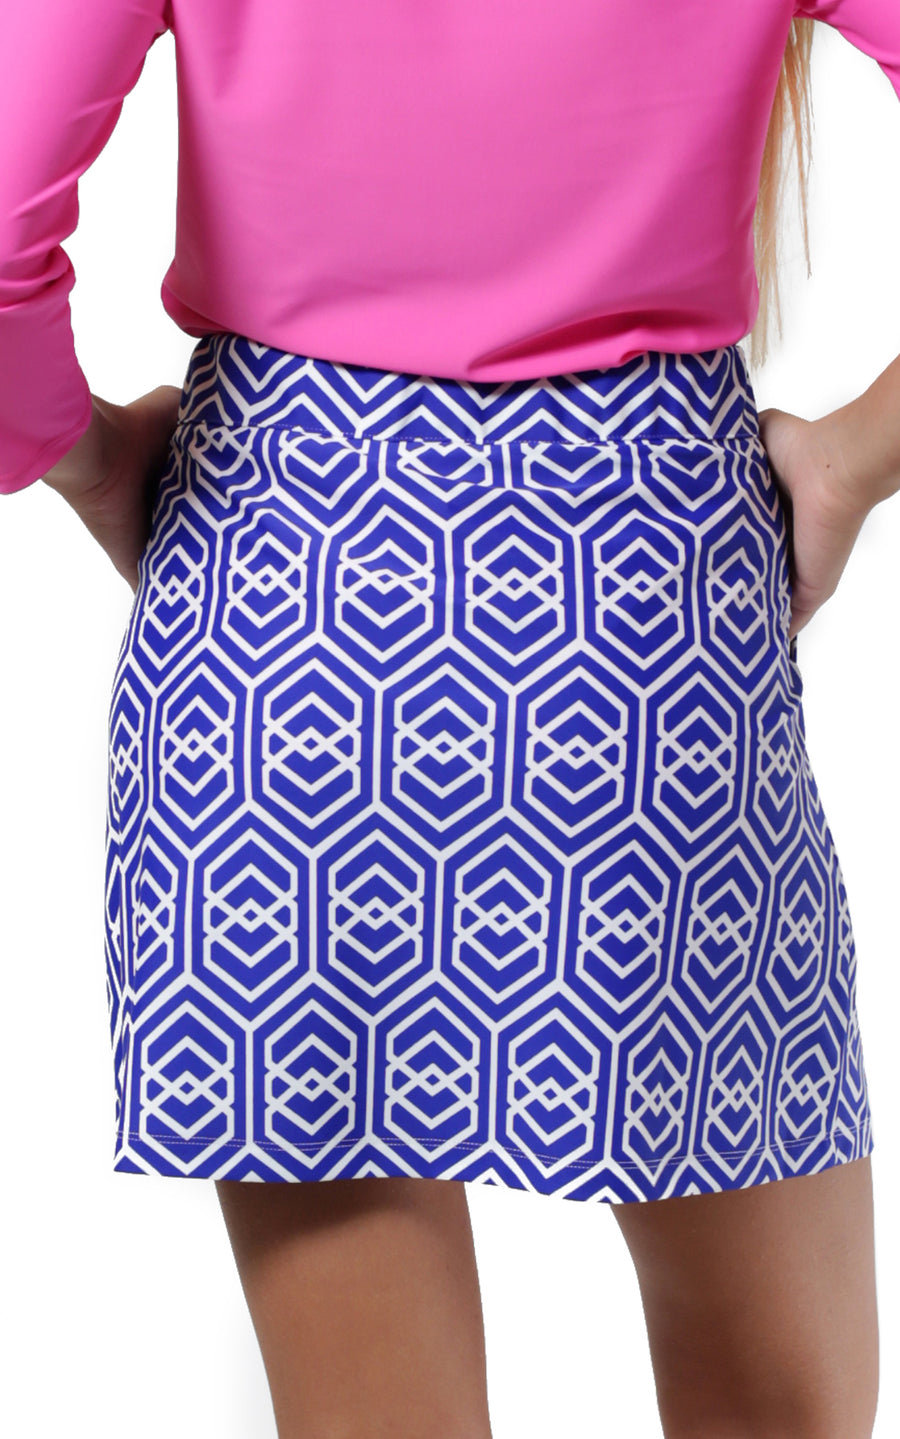 All For Color-Royal Knots Harbor Isle Skort - FINAL SALE-Bottoms